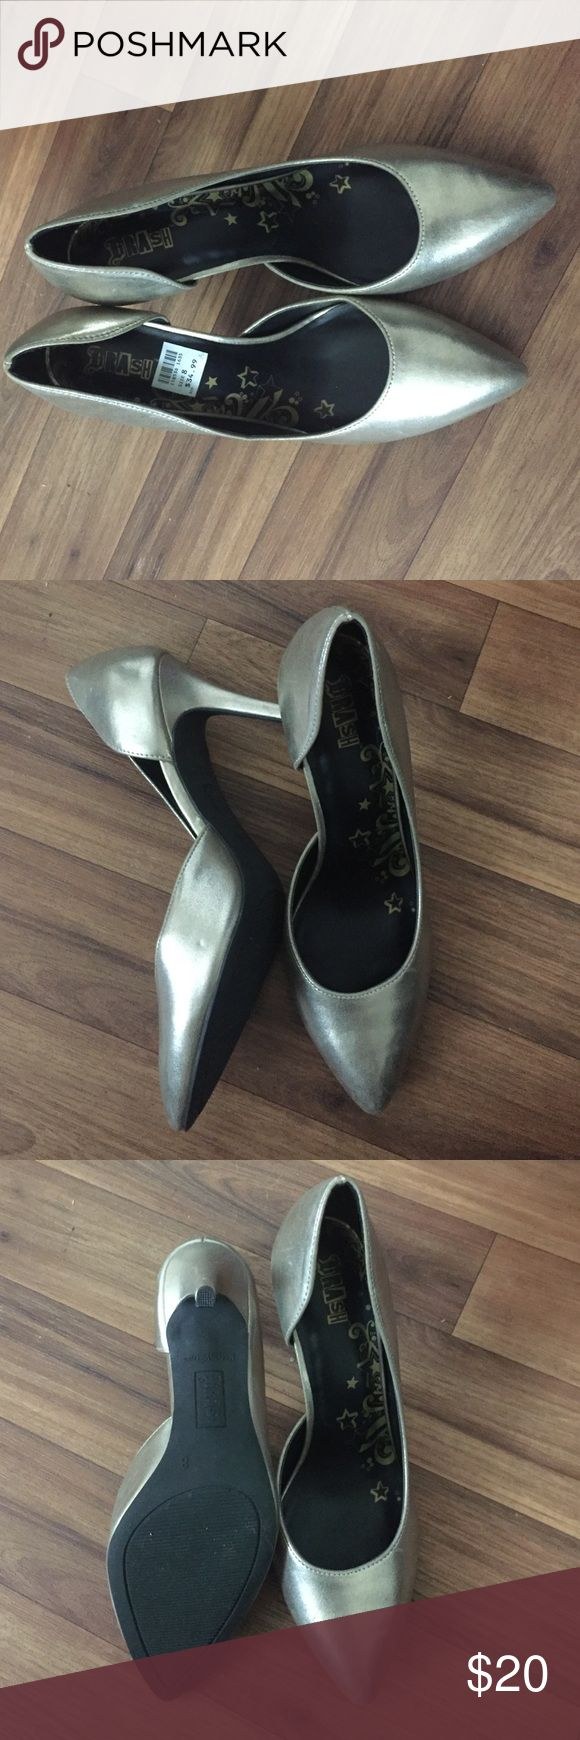 Gold stiletto heels These are a pretty light gold color and about a 3in heel. New never worn! Shoes Heels